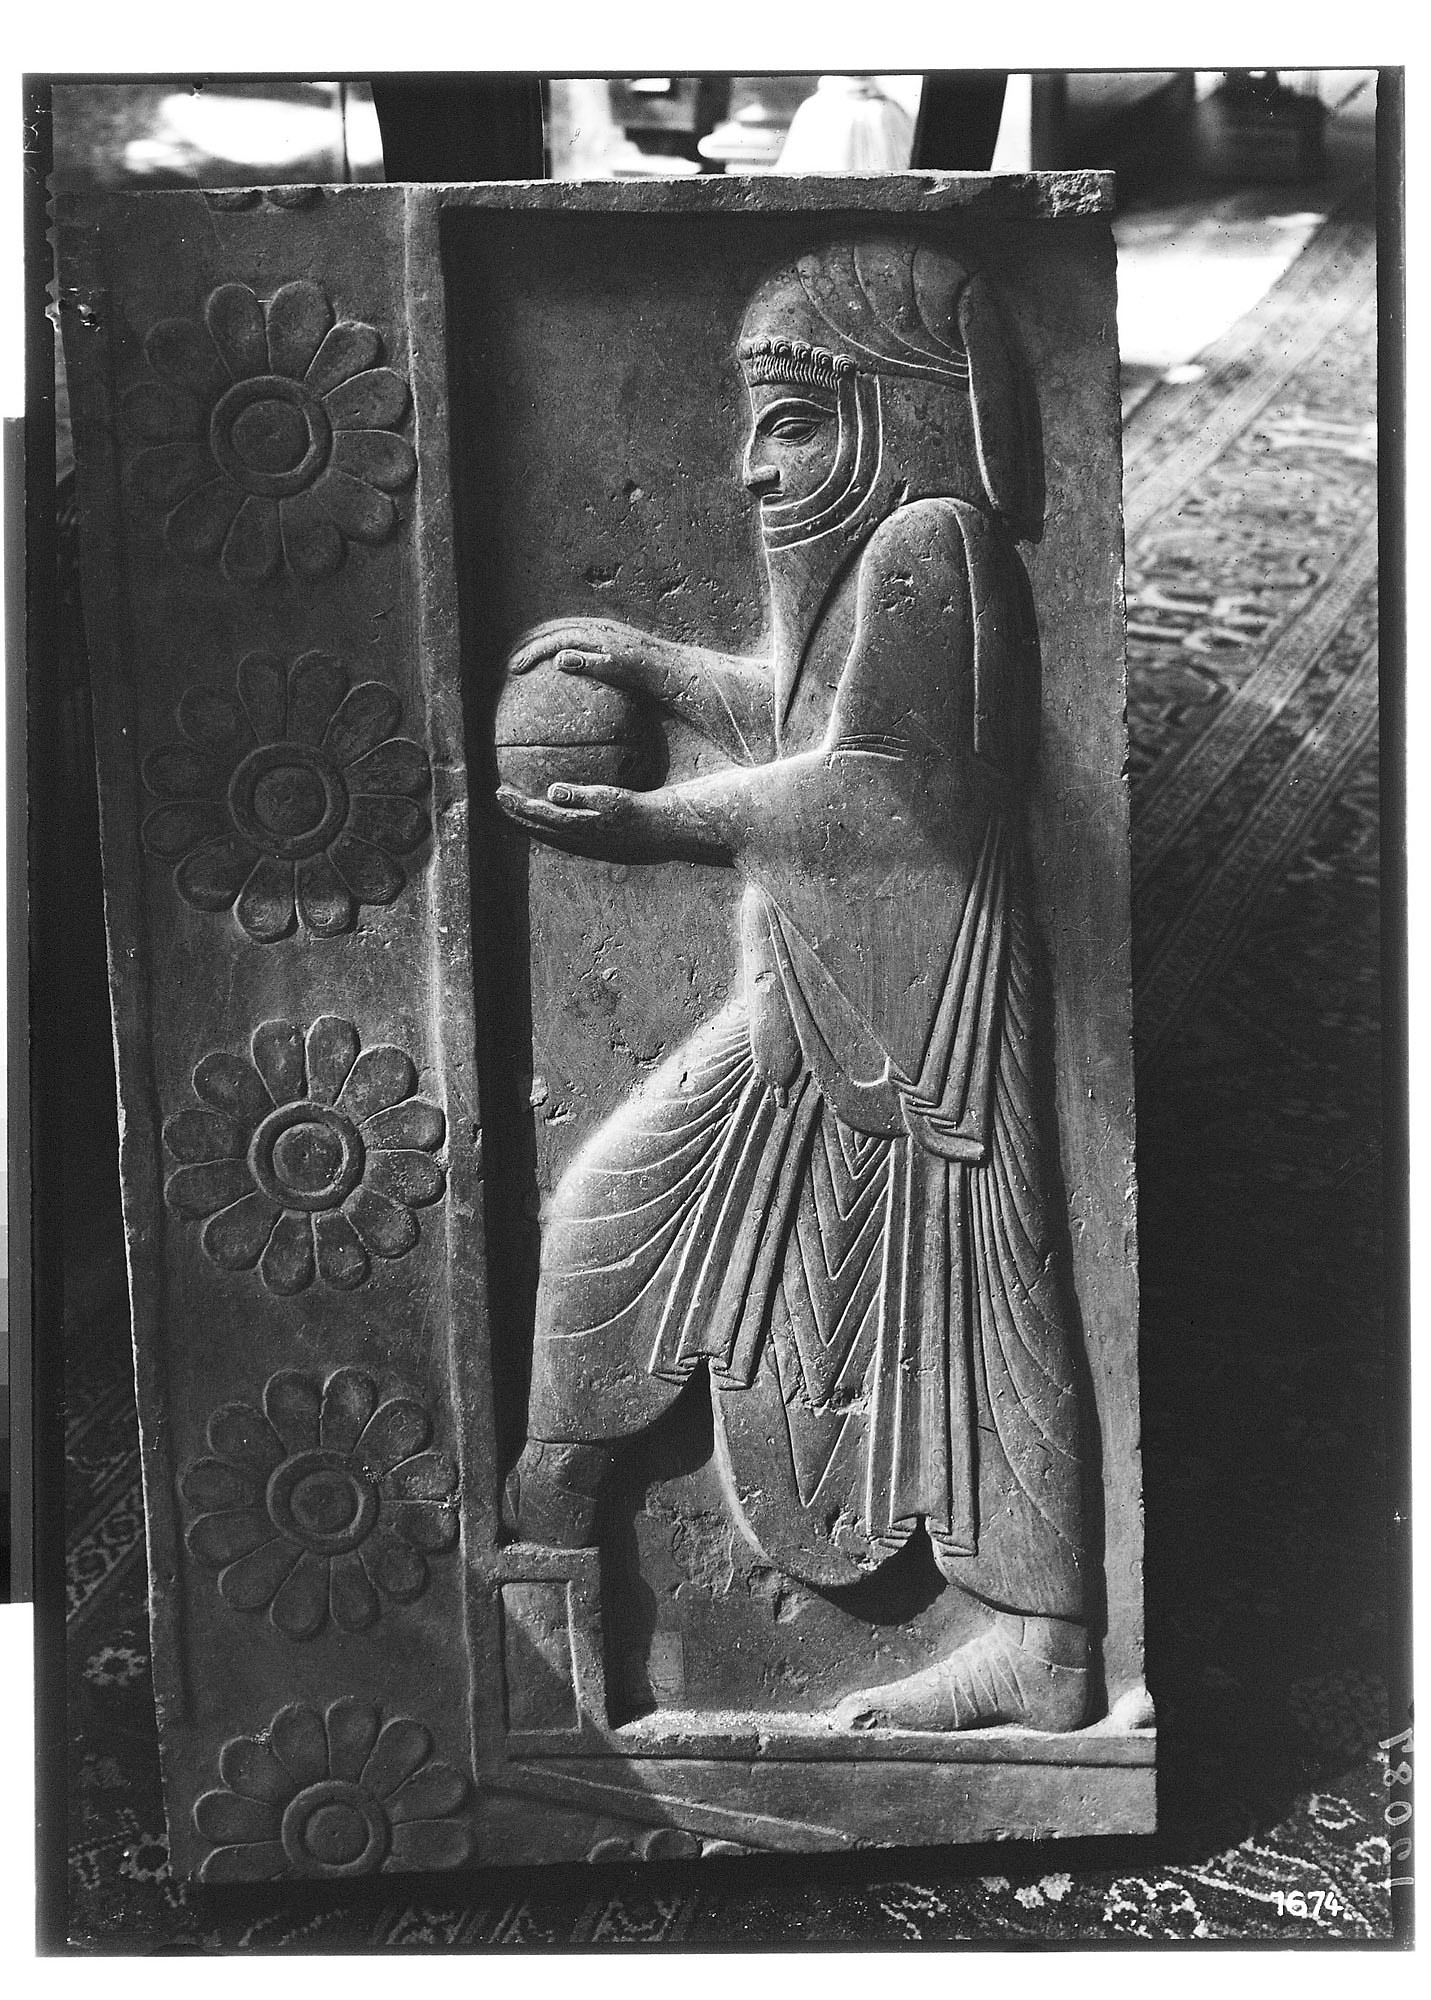 images for Excavation of Persepolis (Iran): Stone Relief Fragment Picturing a Servant graphic